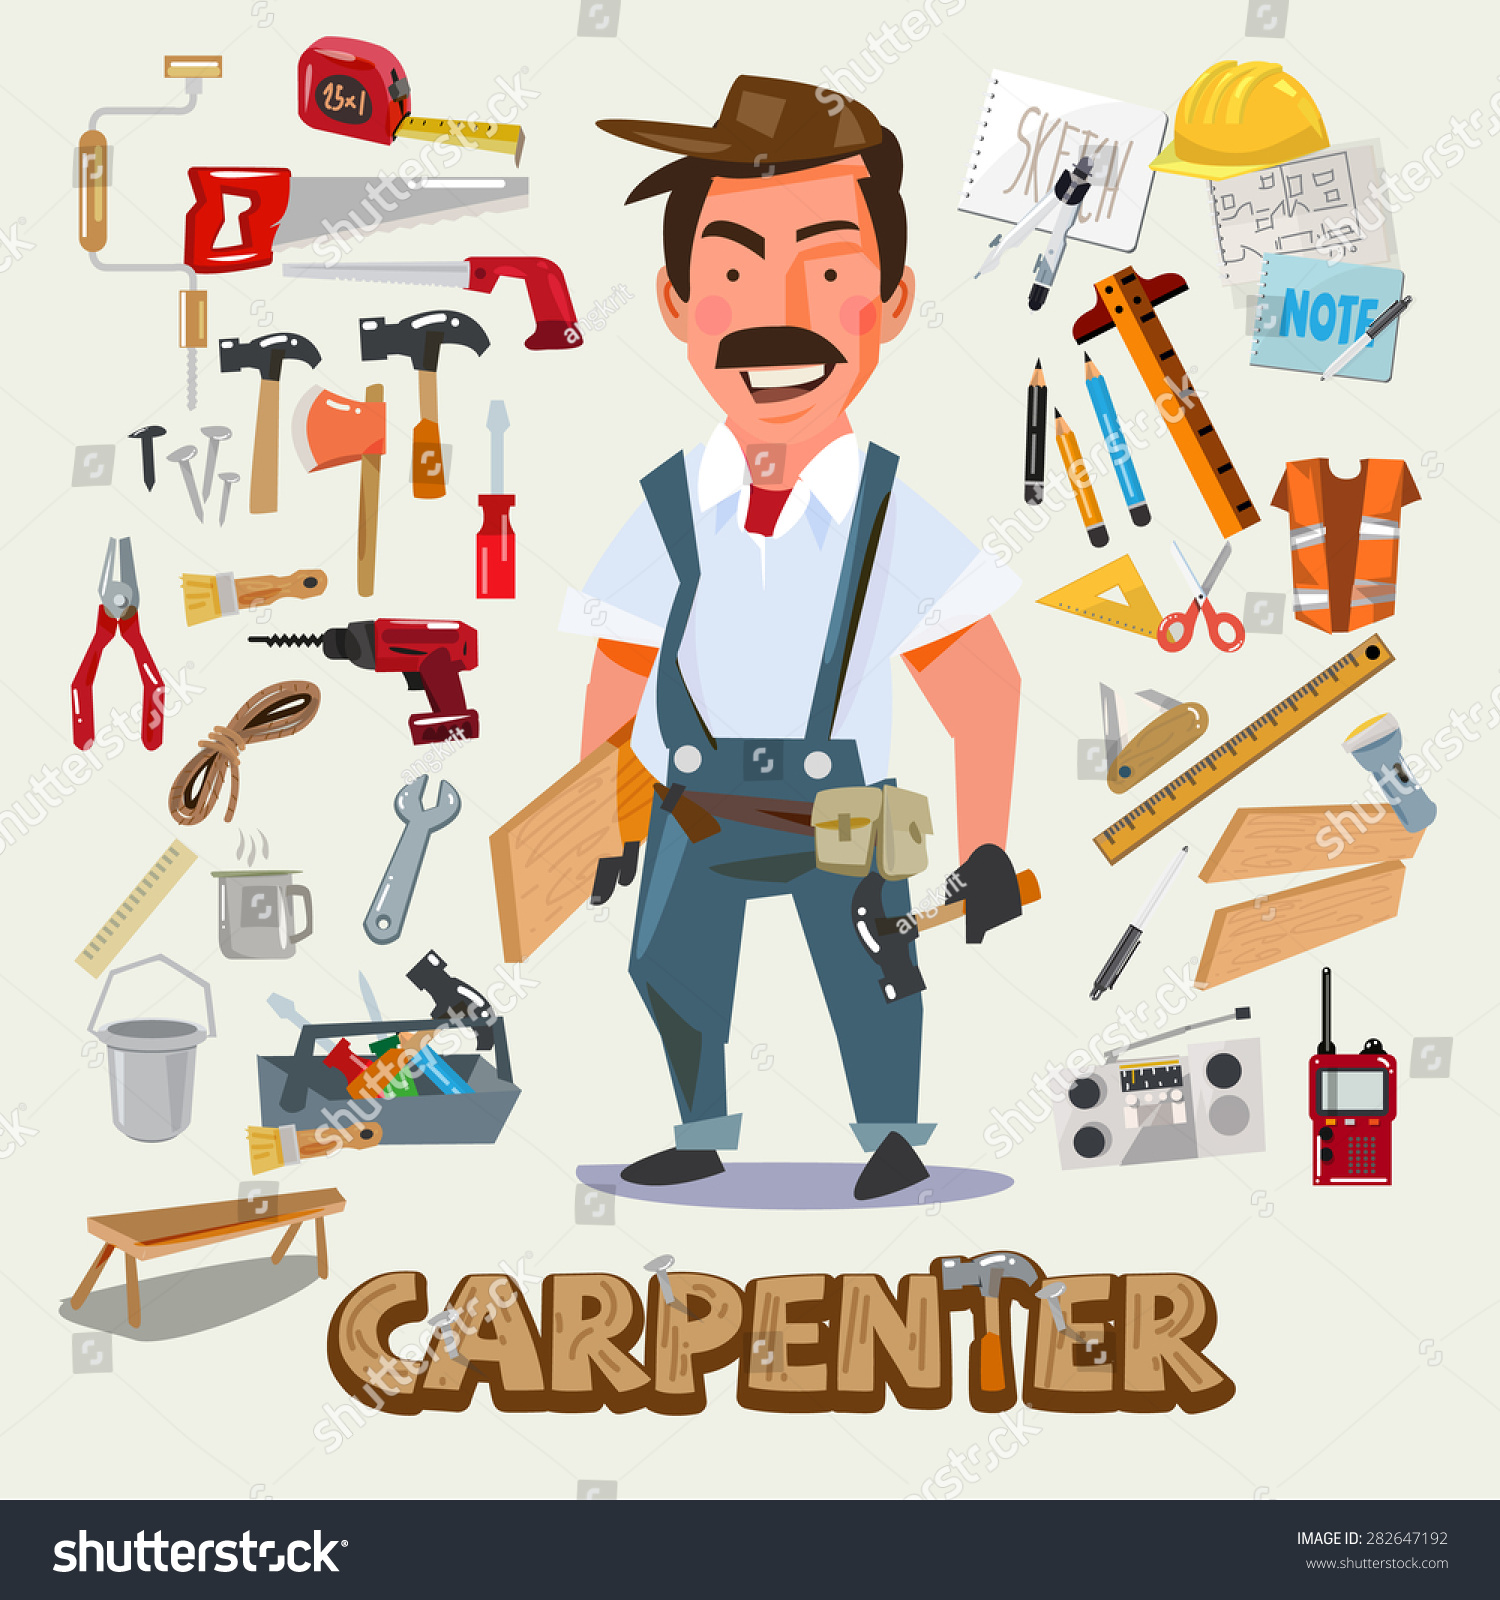 Cartoon Character Design Tool : Carpenter character design set tools carpentry stock